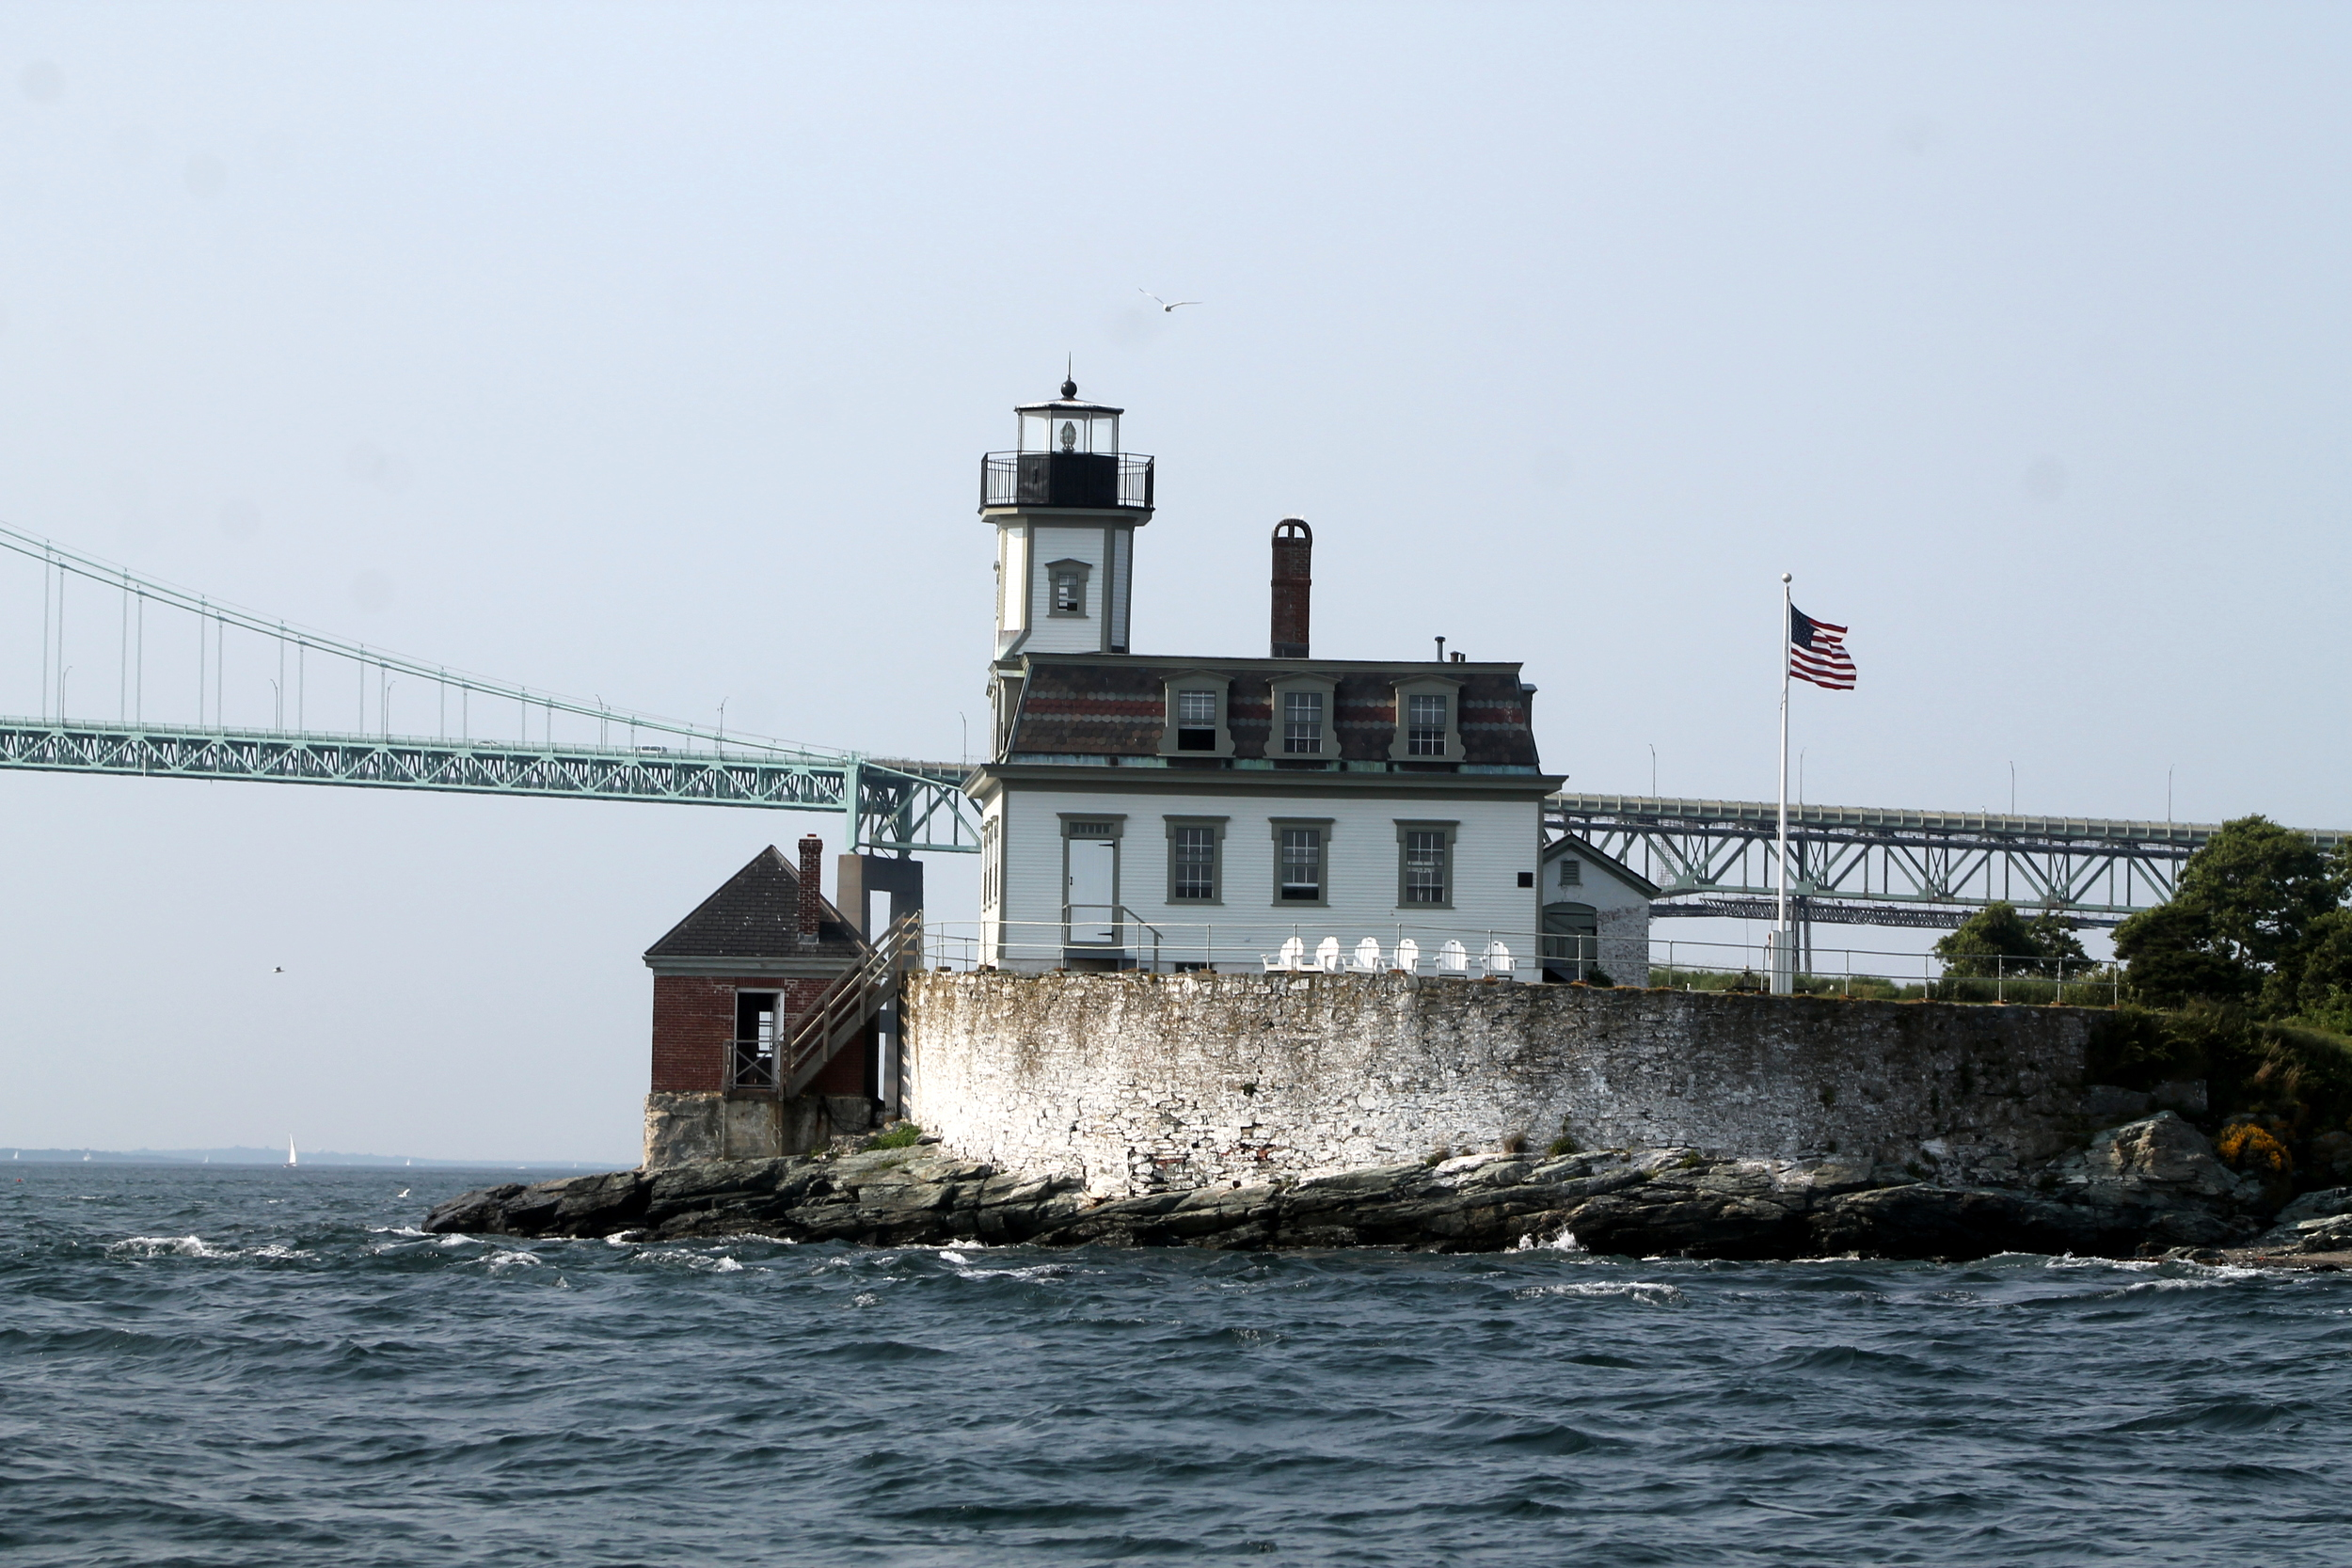 Rose Island Lighthouse, Newport, RI. Image via Jessica Gordon Ryan